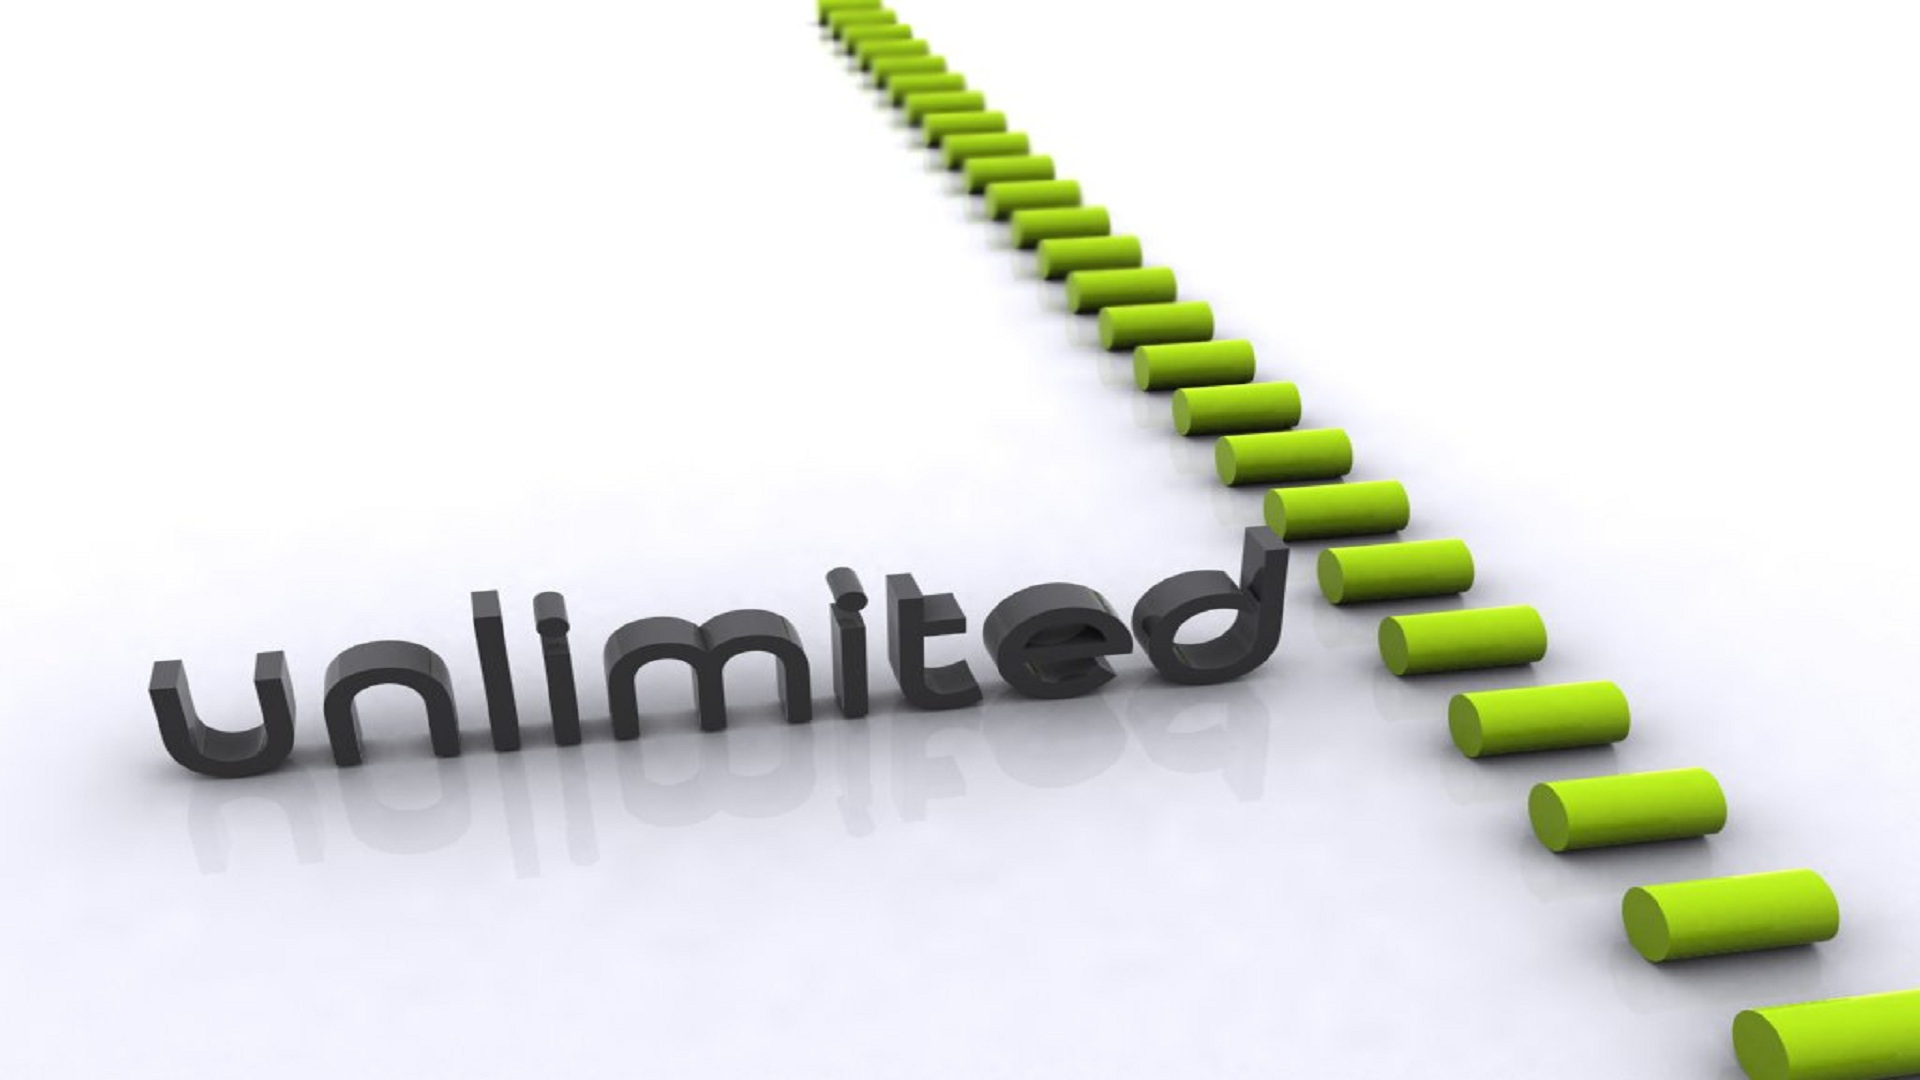 Unlimited Wallpaper Download HD Wallpapers 1920x1080